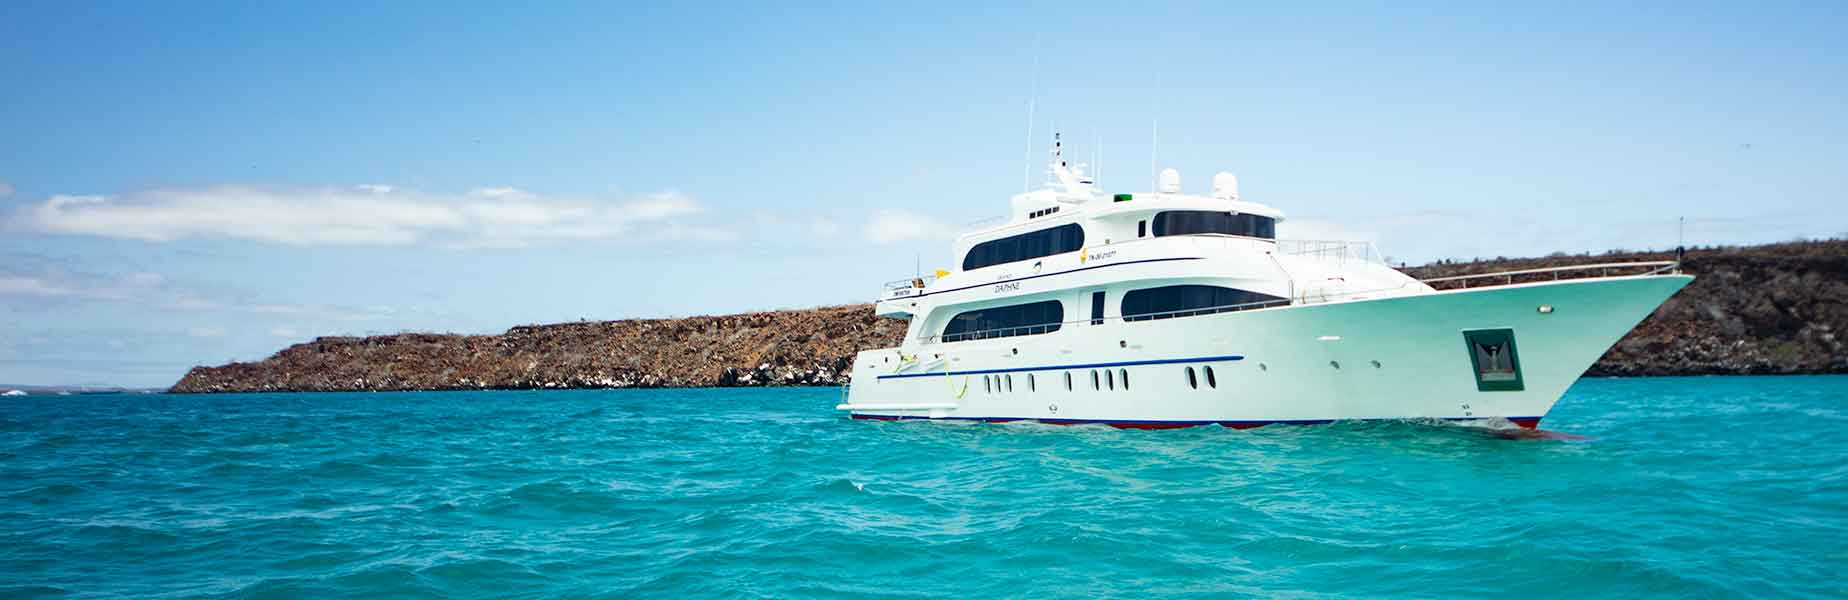 the grand daphne luxury yacht galapagos